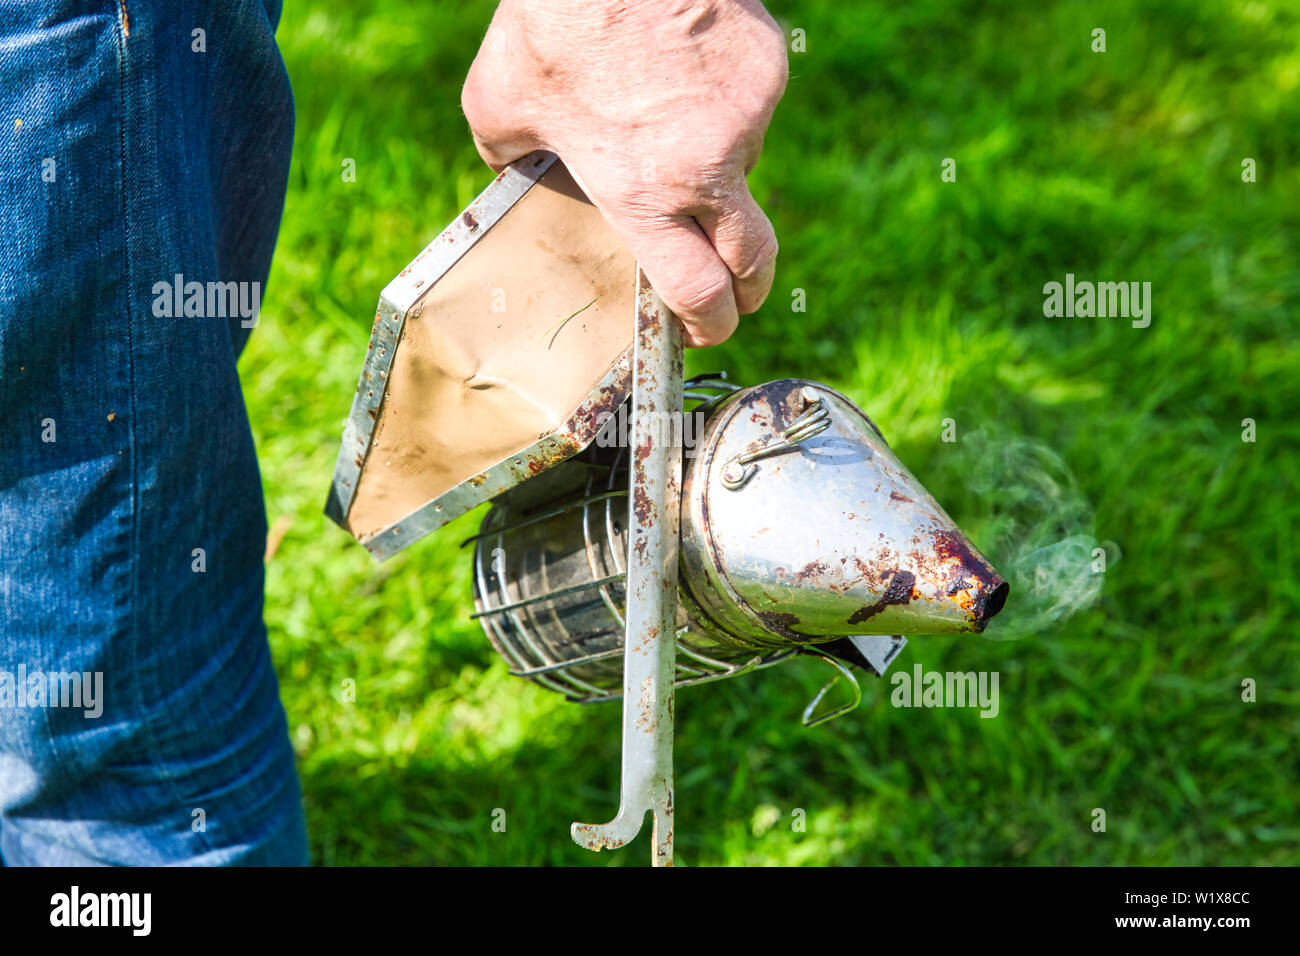 Hand of beekeeper in protective clothing switching on the old smoker with brush on grass garden. Smoke to transfer bees, to visit a hive. Authentic tr - Stock Image